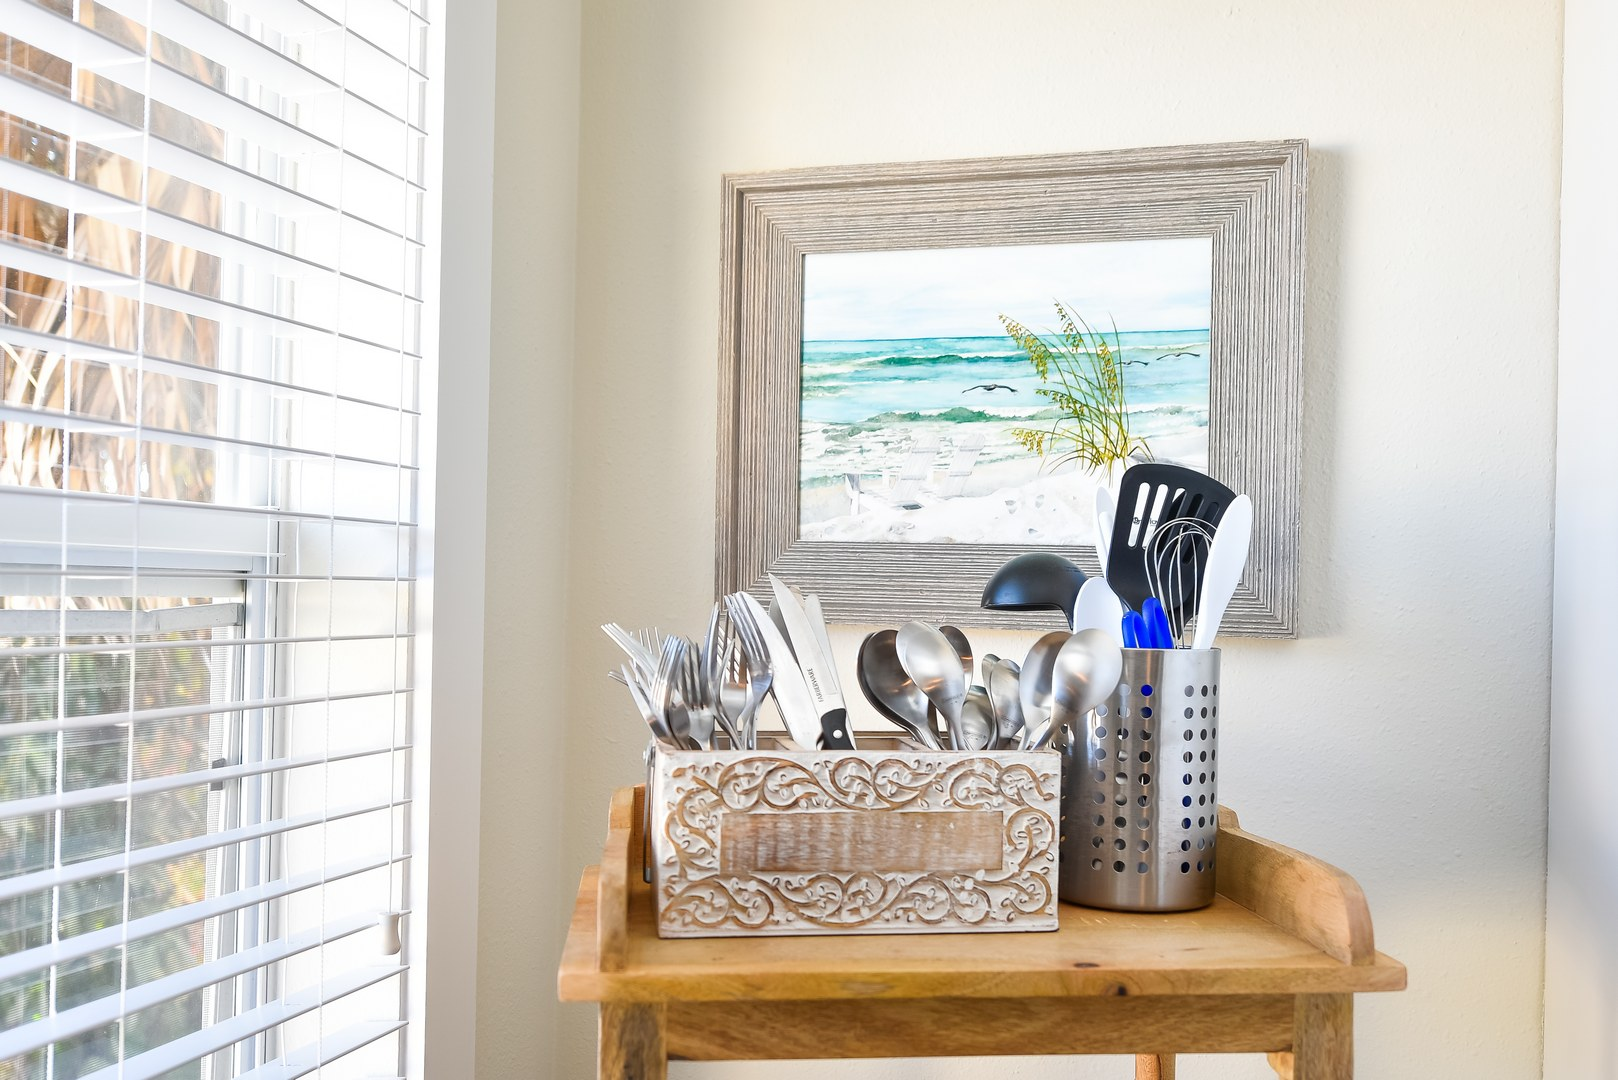 Kitchen utensils, glass ware, and more